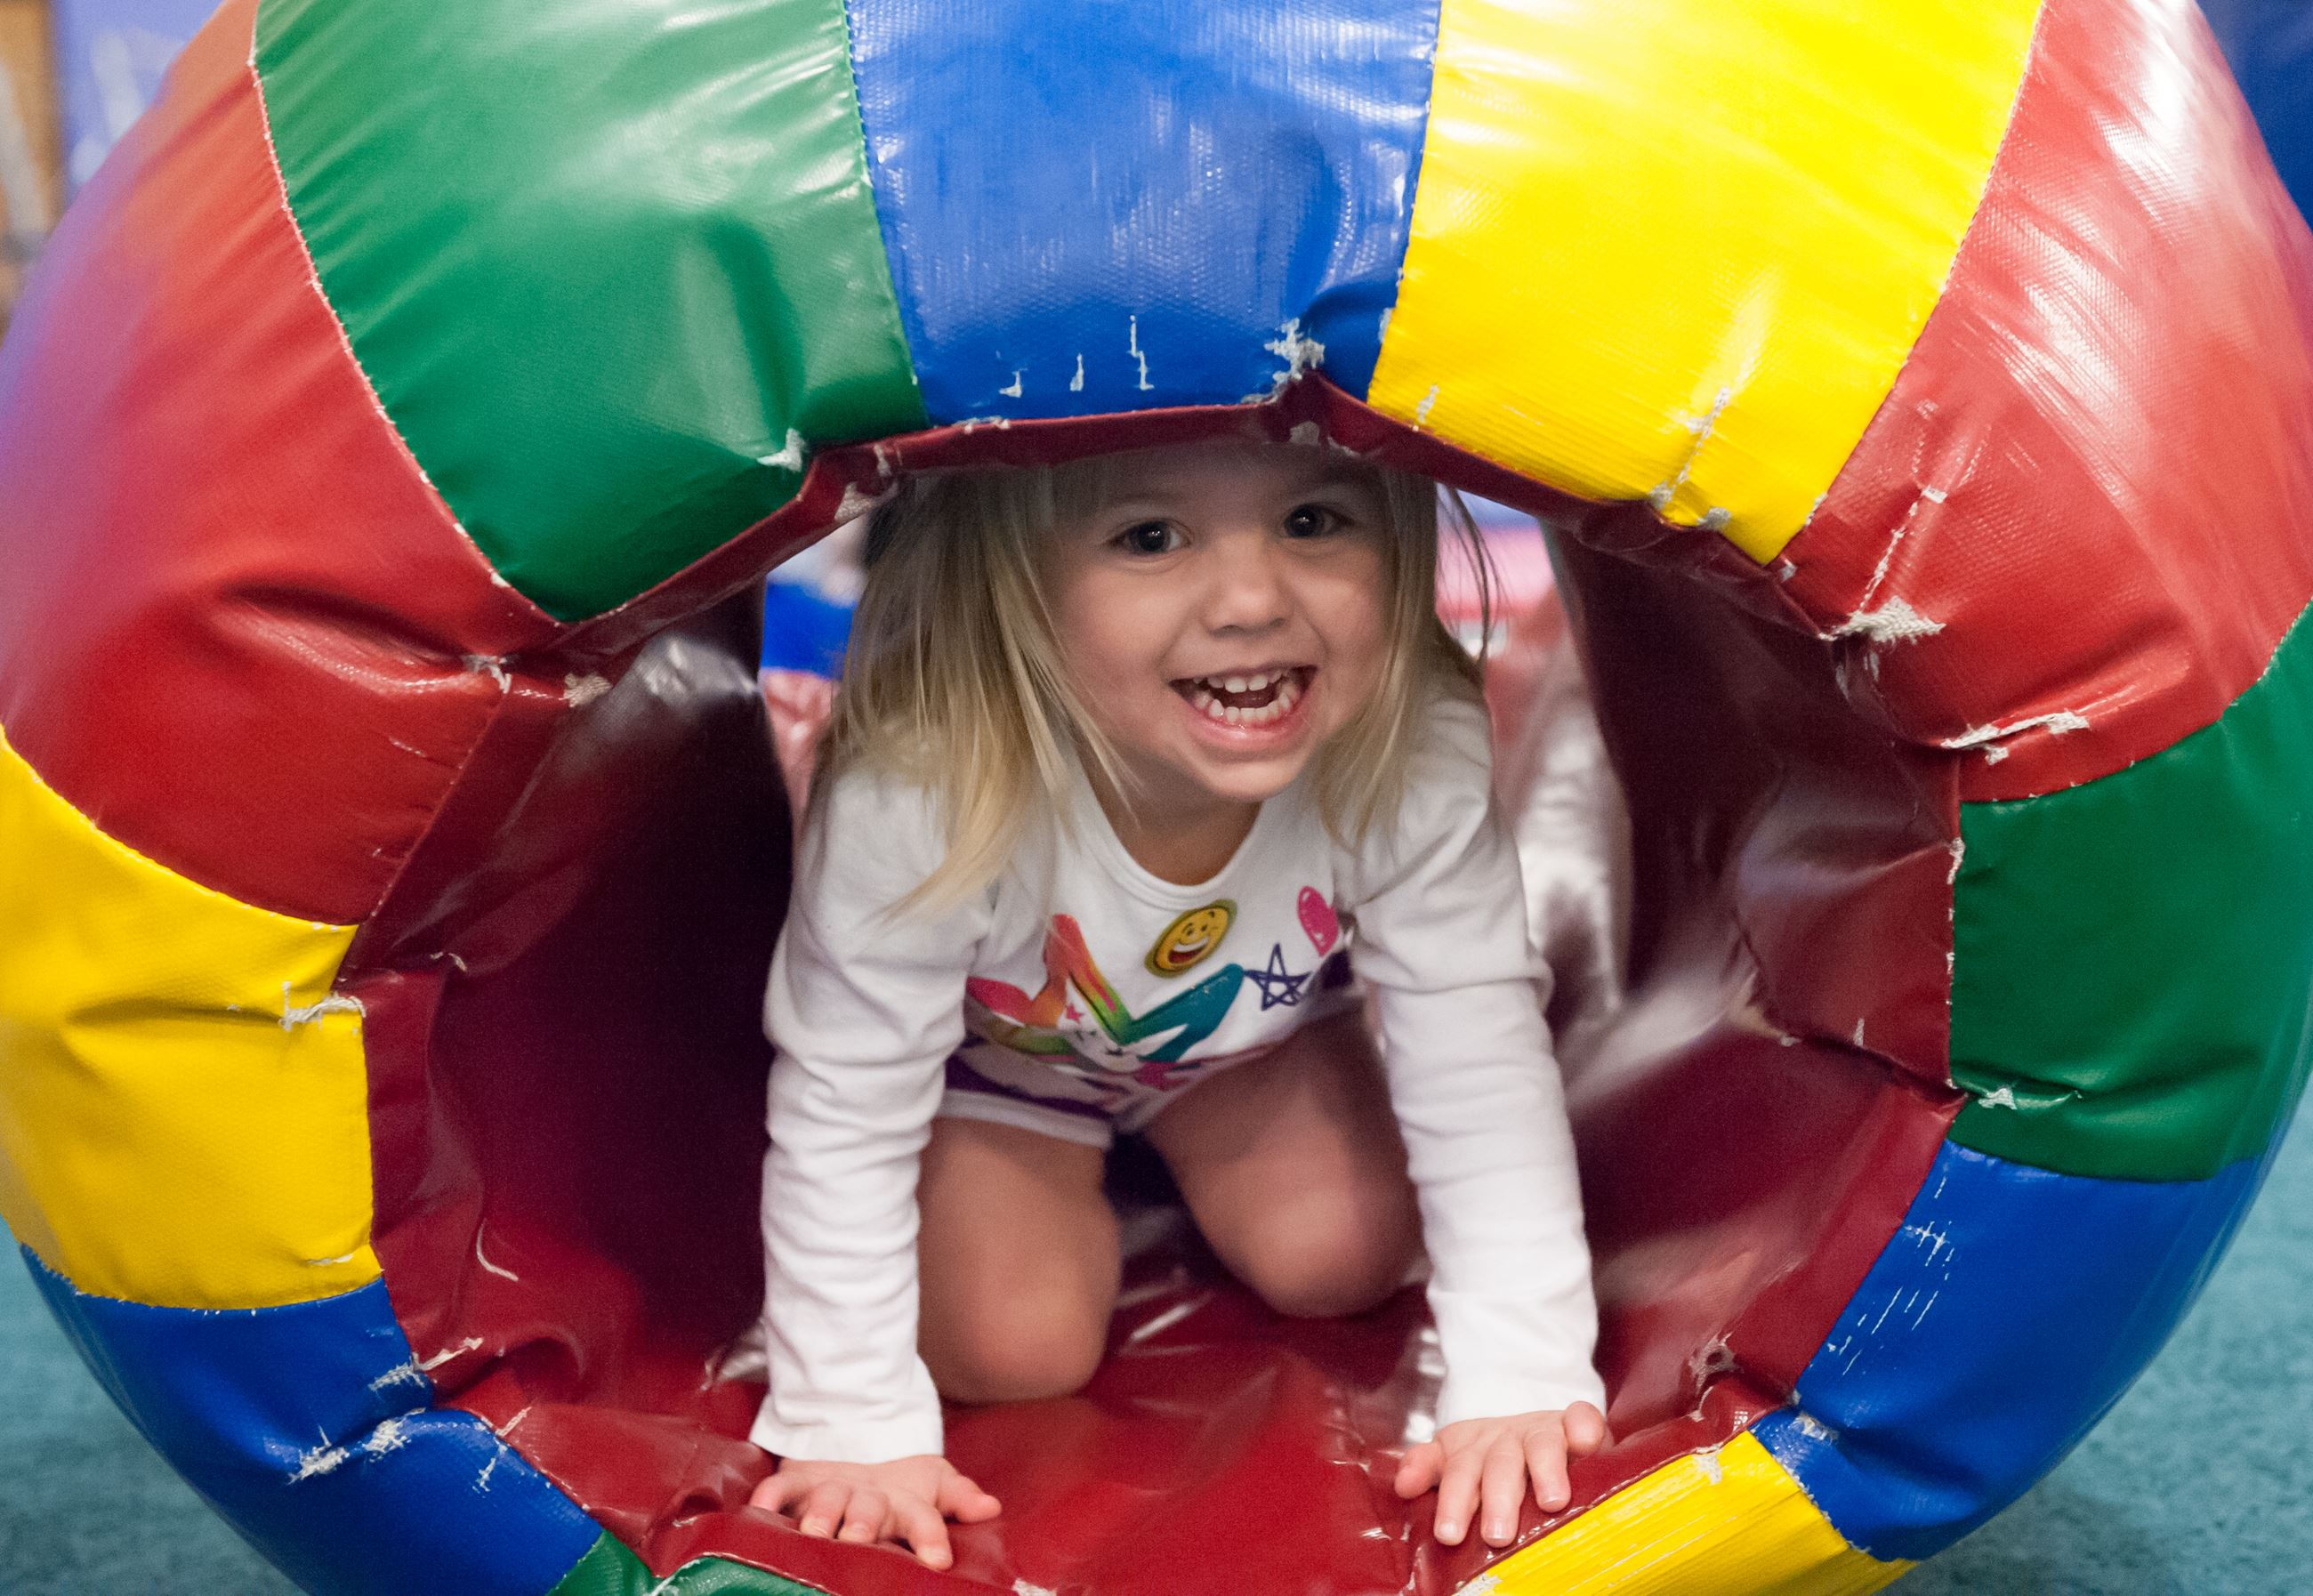 Little Girl in a Colorful Tunnel Toy